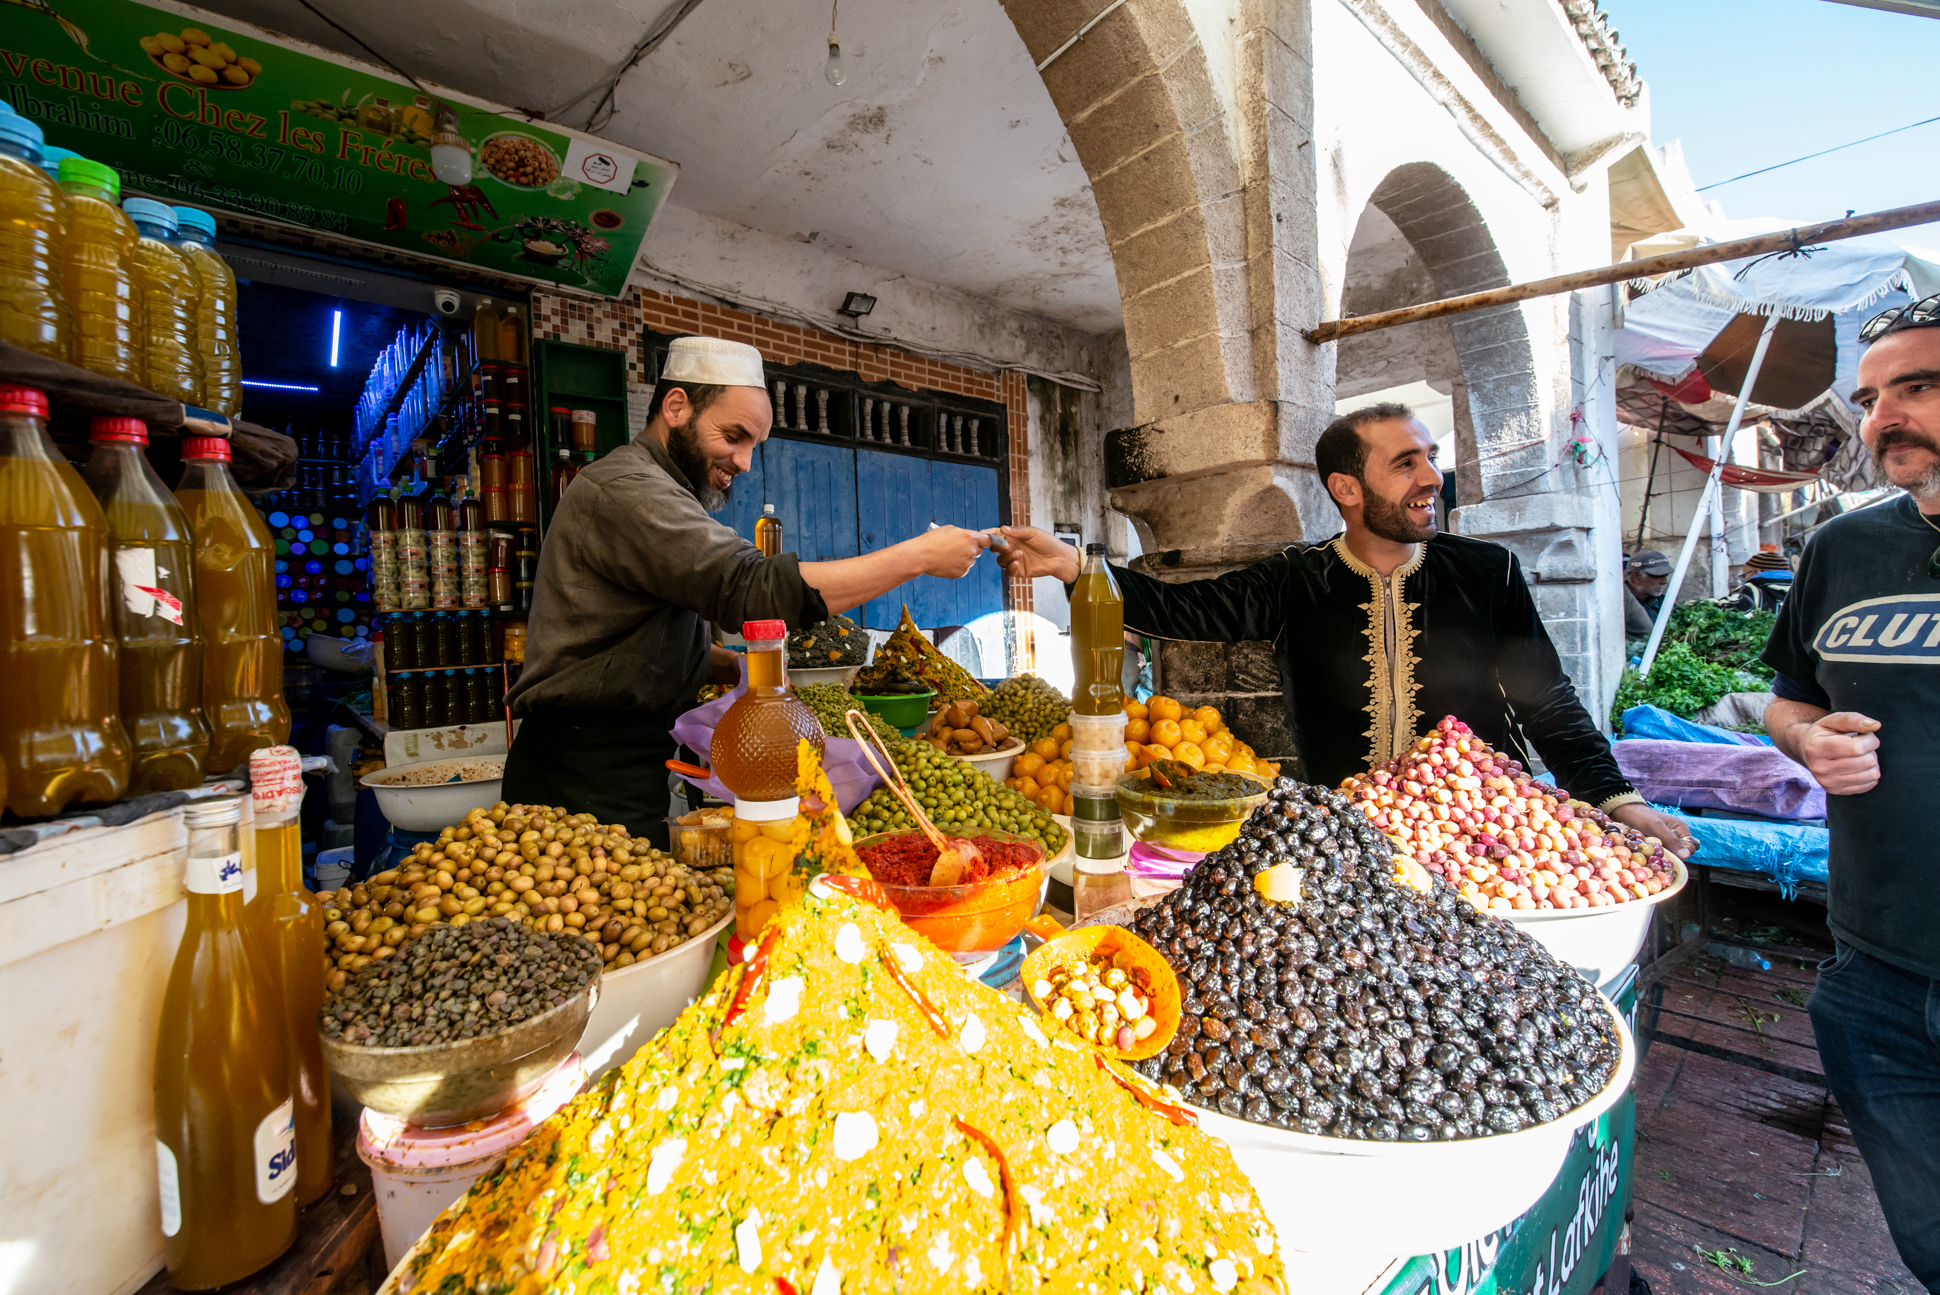 Moroccan market with olives and spices. Ellis & Me